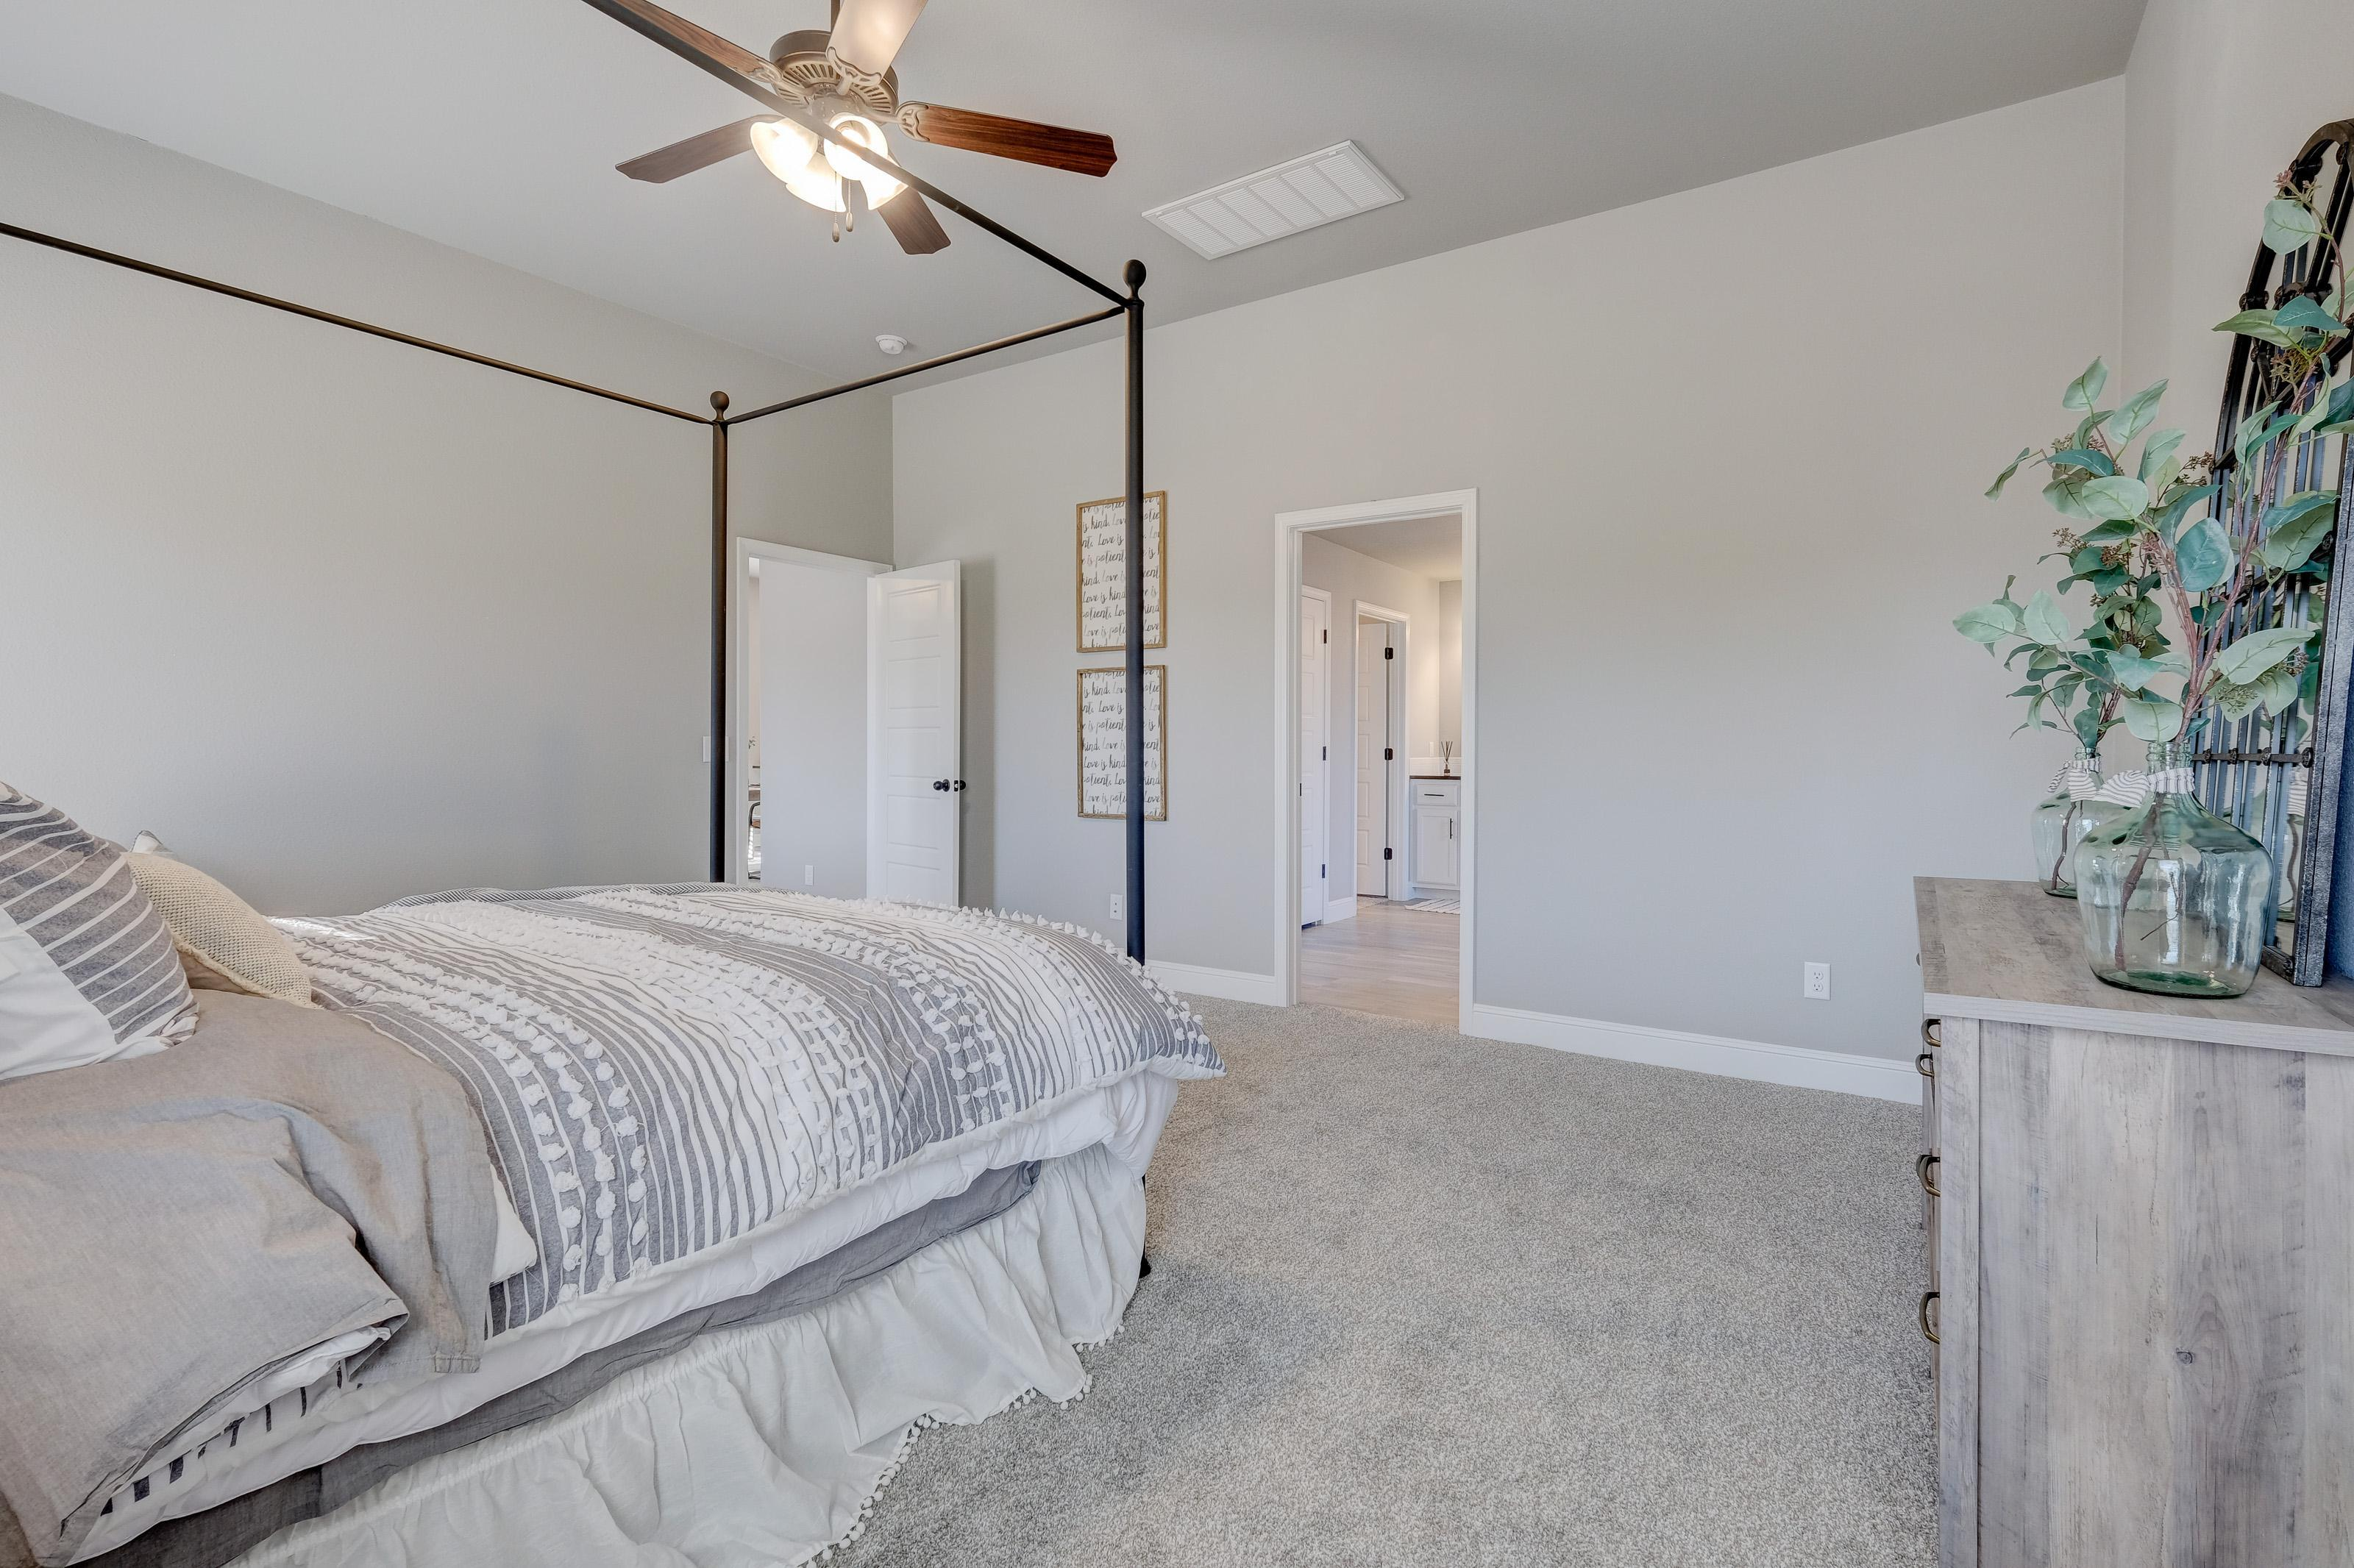 Bedroom featured in the 2050KP Series By Schuber Mitchell Homes in Joplin, MO